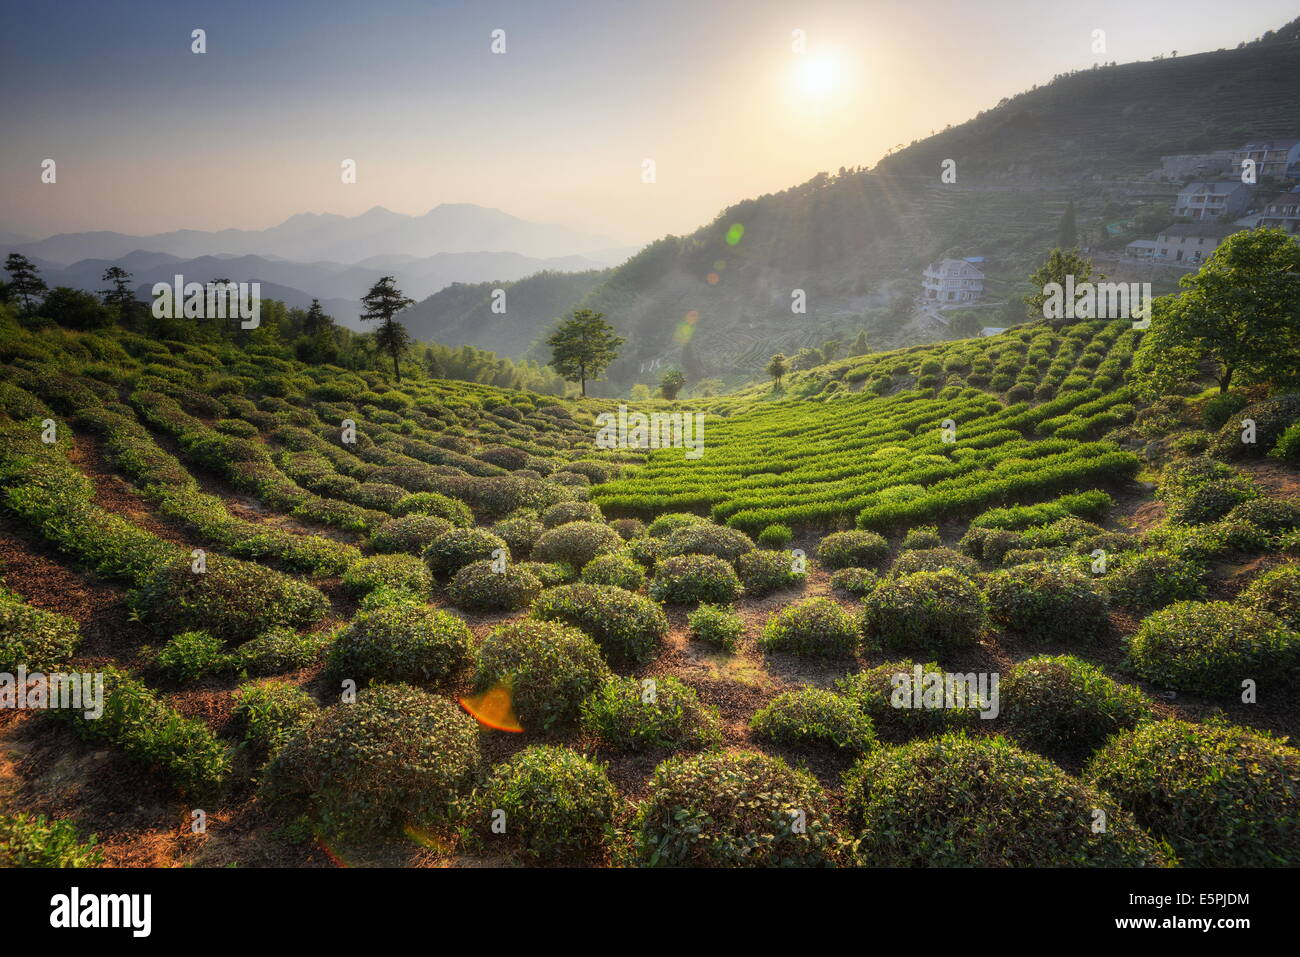 Sprawling tea fields in the mountains of Zhejiang province, China, Asia - Stock Image